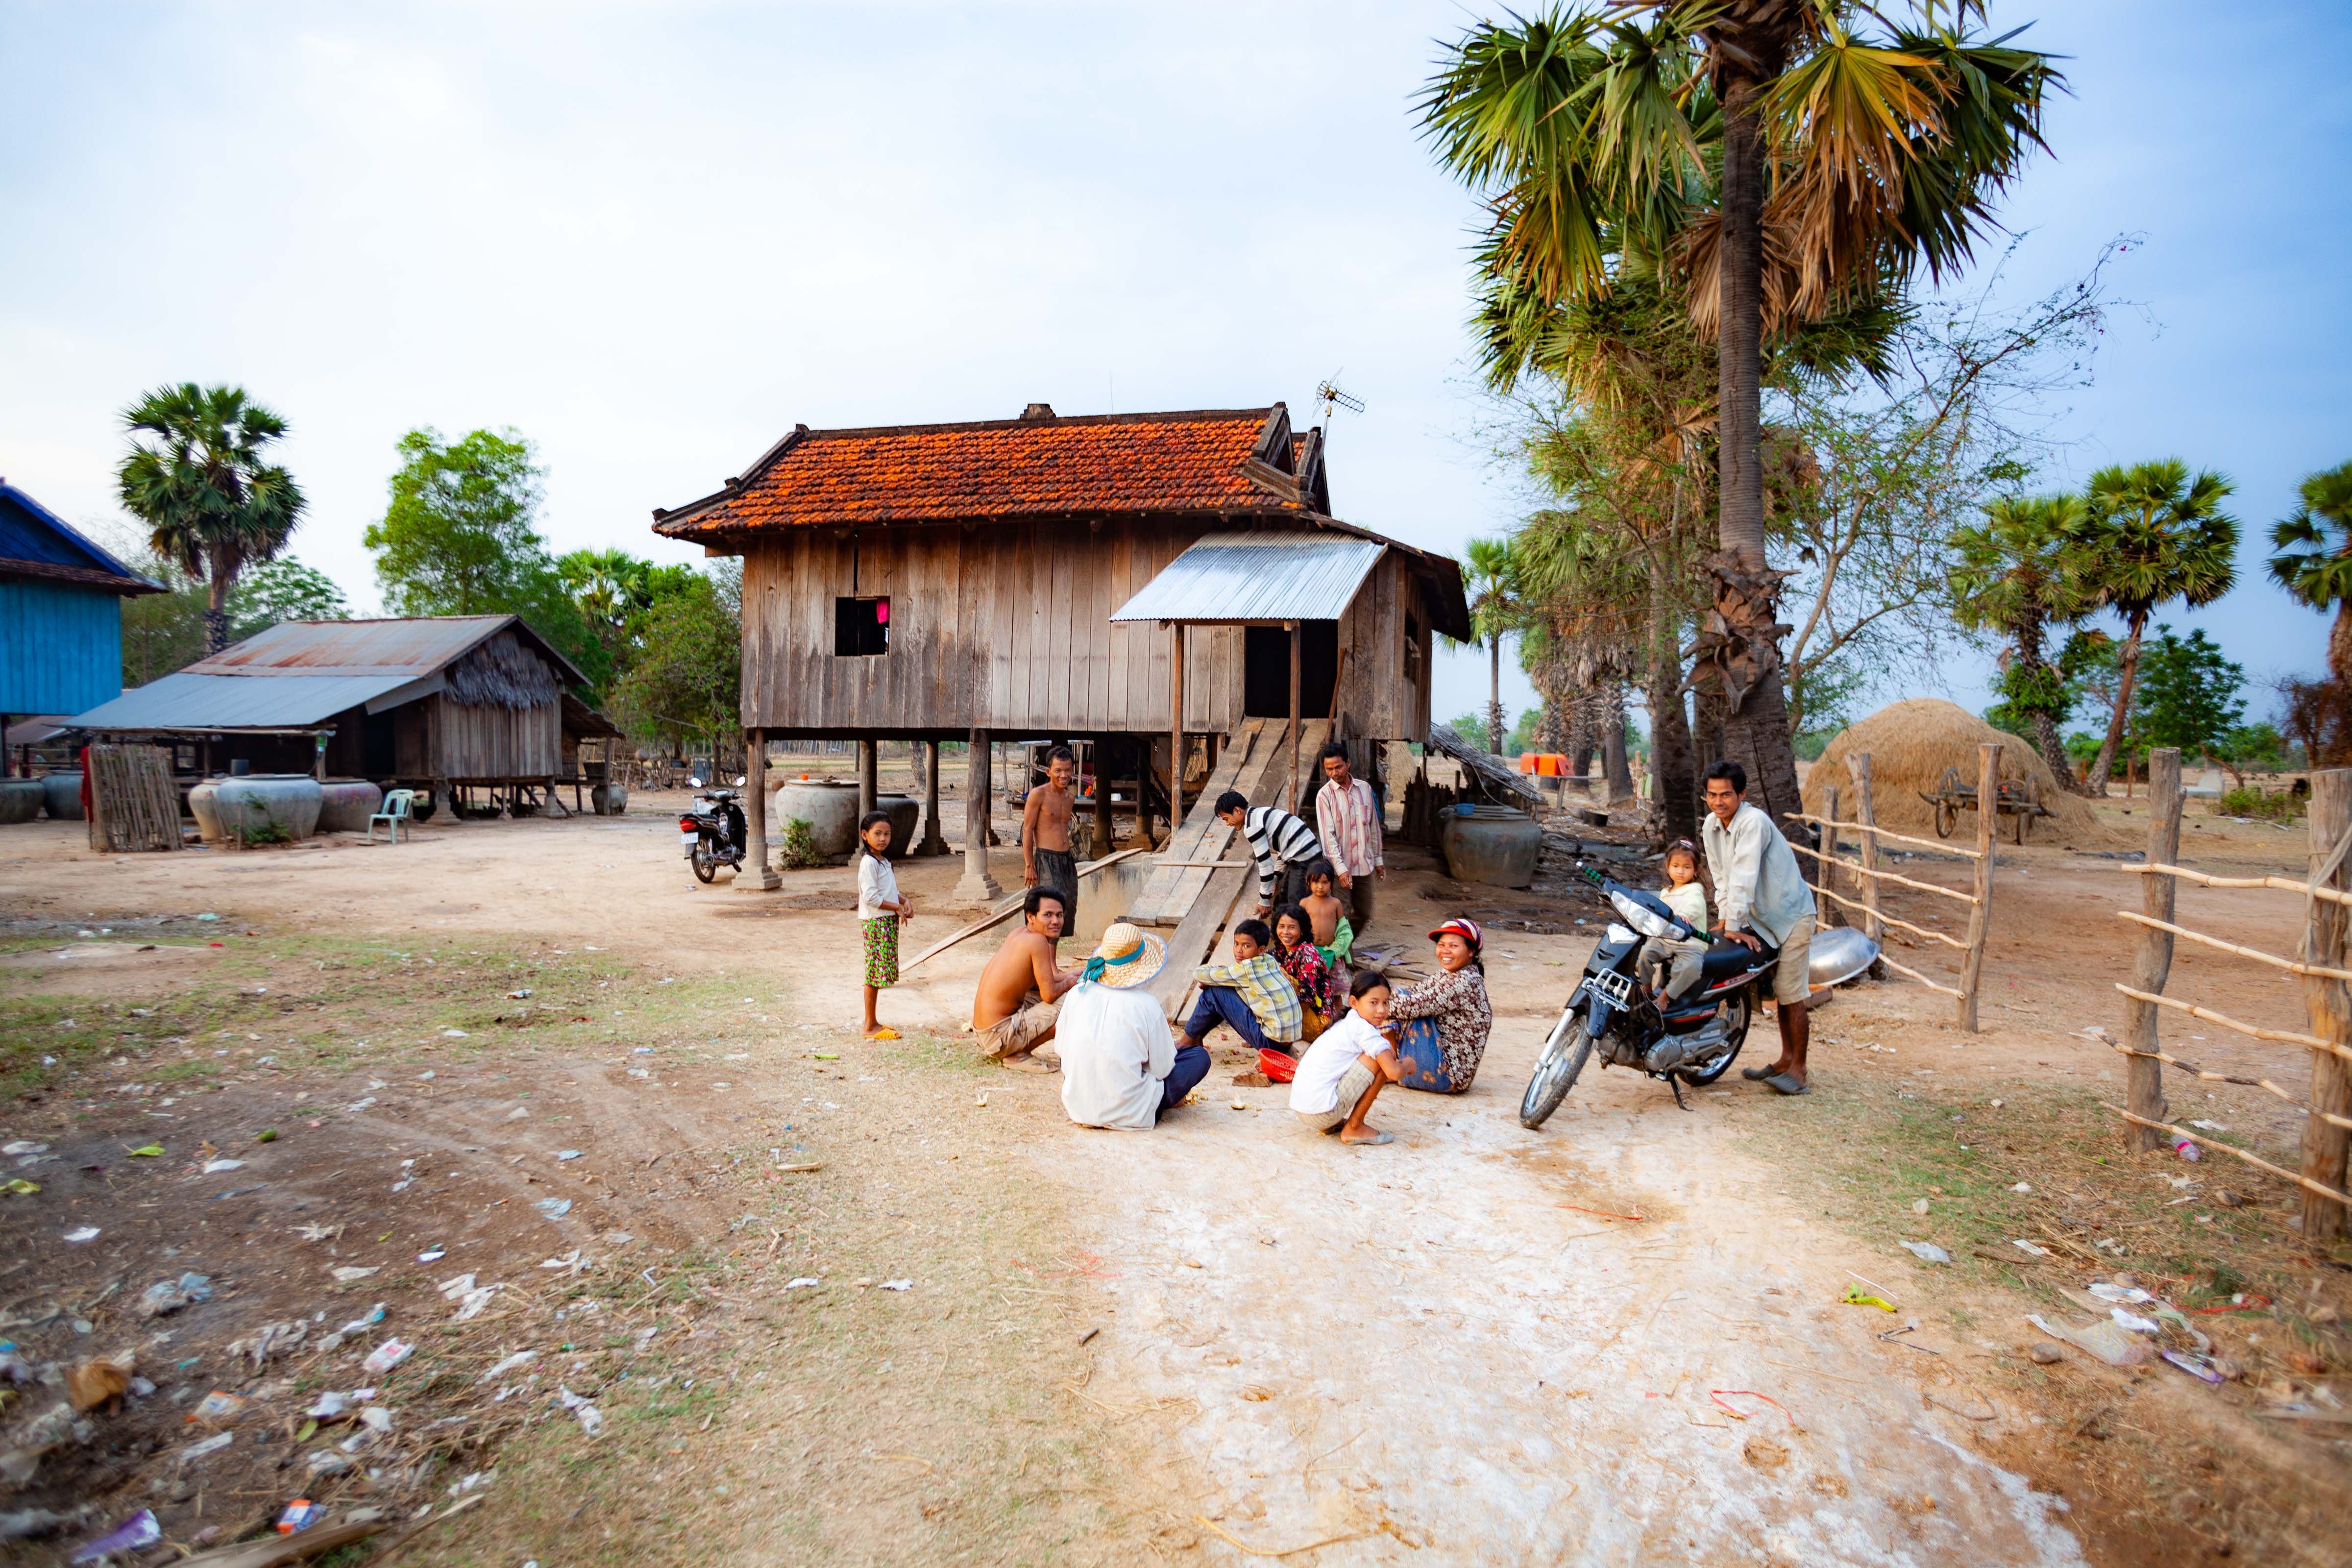 Cambodia, Pousaat Prov, Village House, 2011, IMG 9605